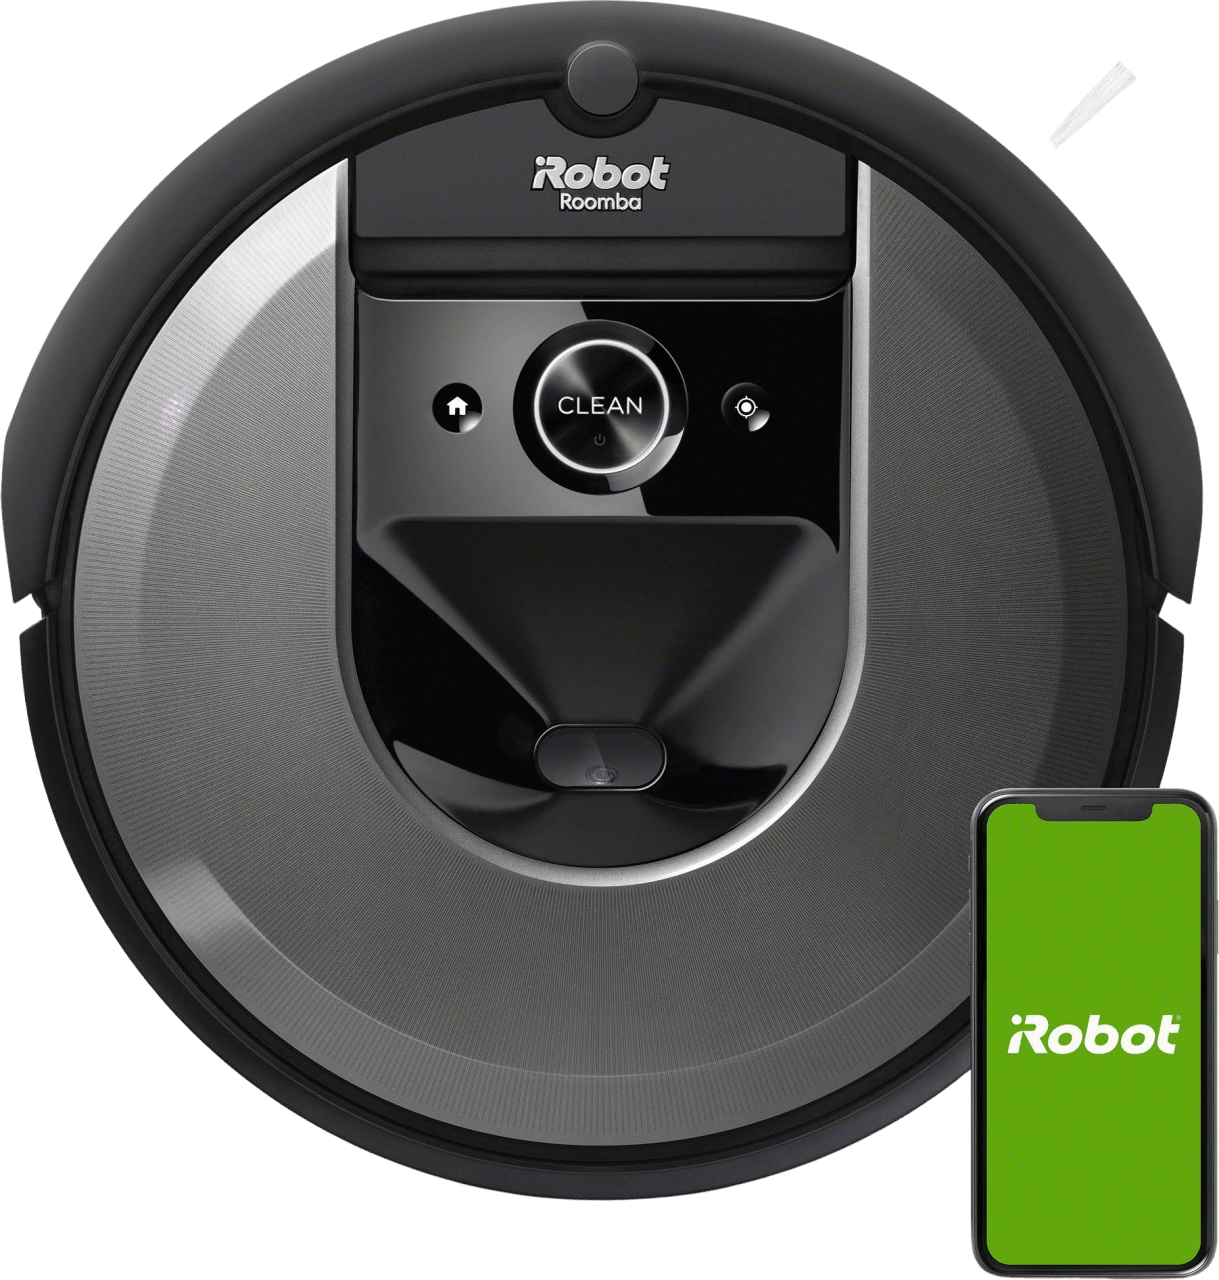 Black iRobot Roomba i7+ Vacuum Cleaner Robot with Automatic Dirt Disposal.2